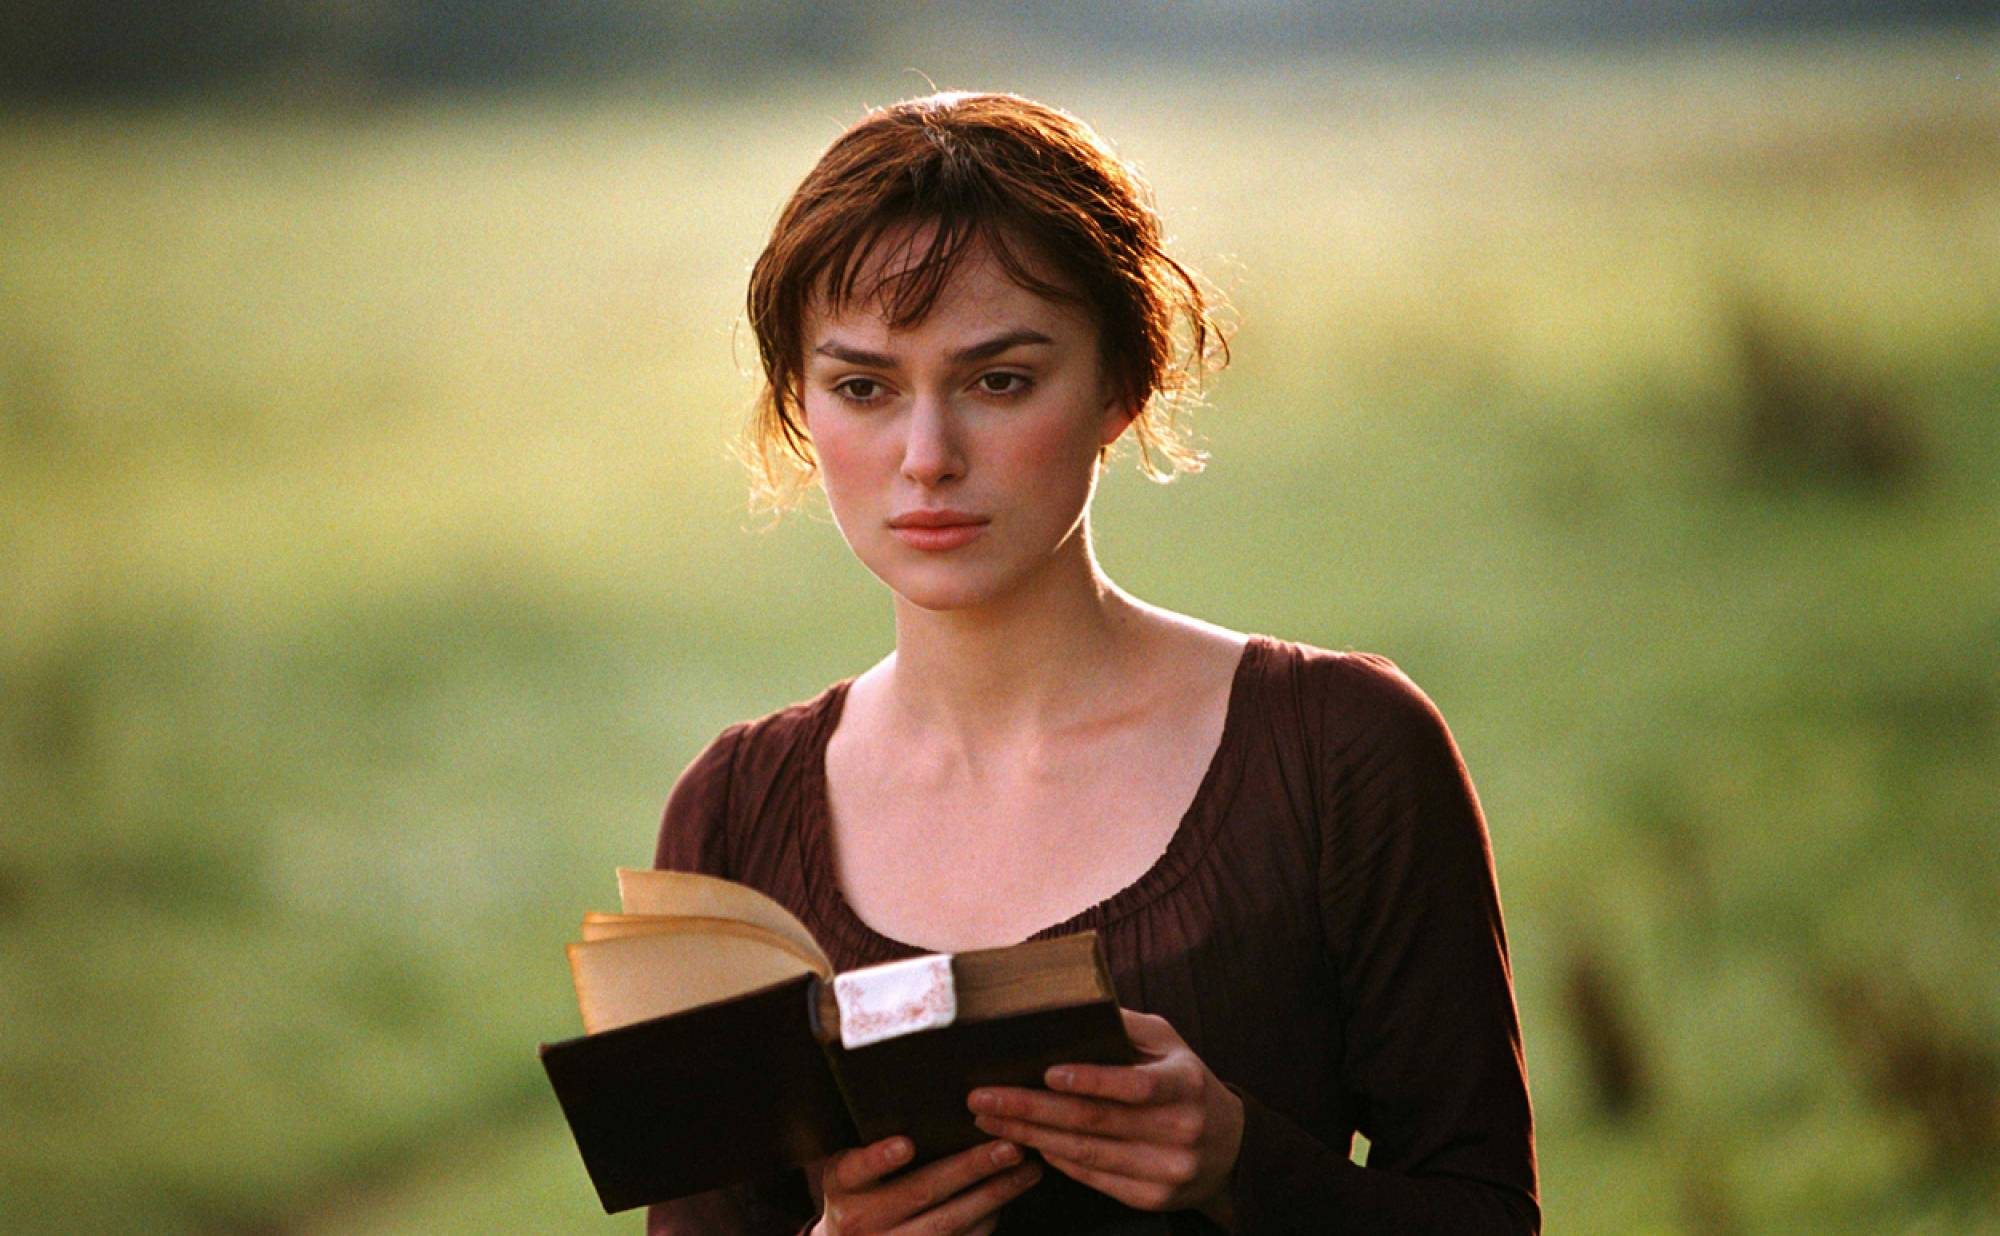 Elizabeth Bennet, as portrayed by Keira Knightley